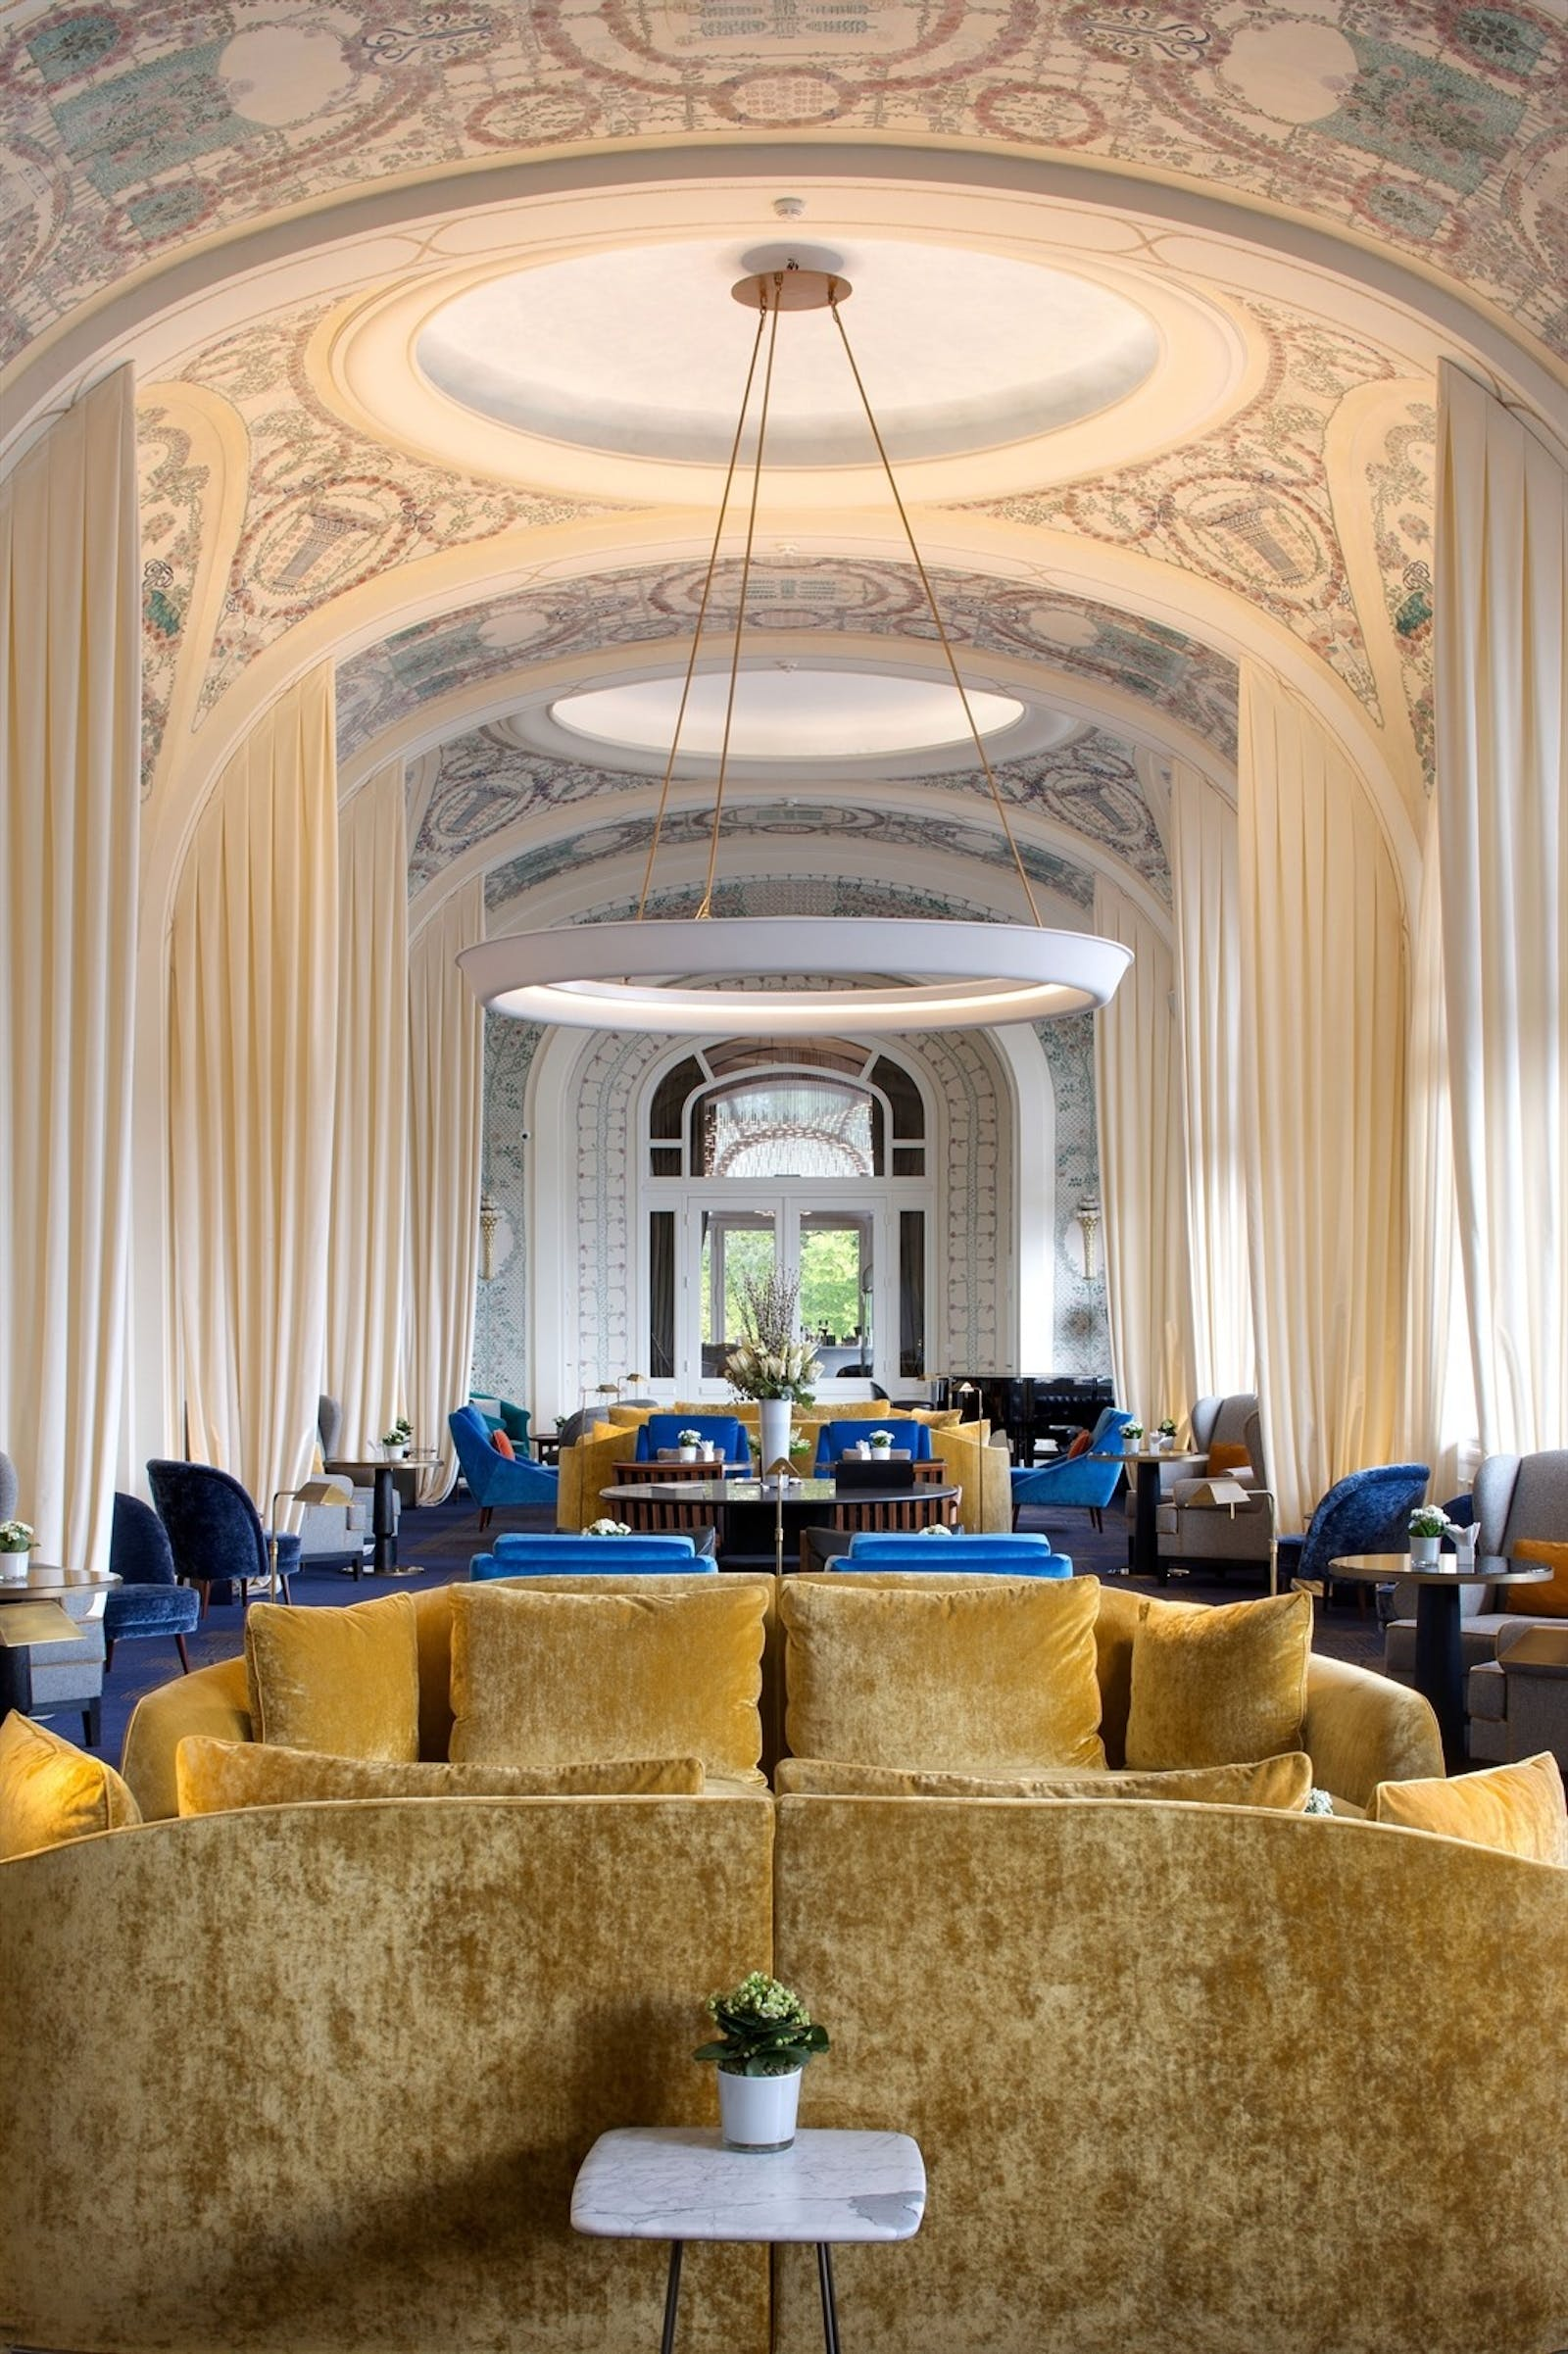 Le Salon, Hotel Royal, Evian Resort, Lake Geneva, France